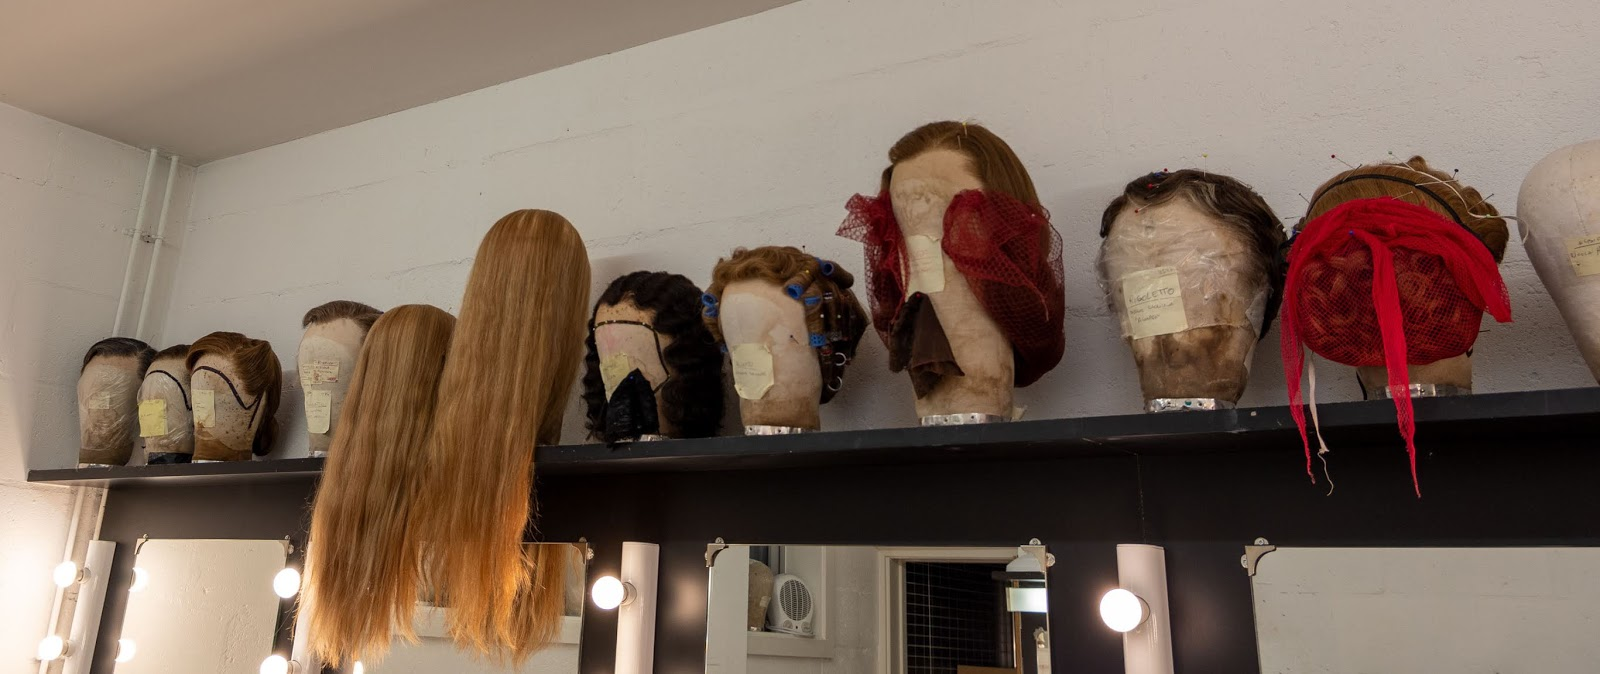 Glyndebourne production wigs in one of the Marlowe Theatre dressing rooms